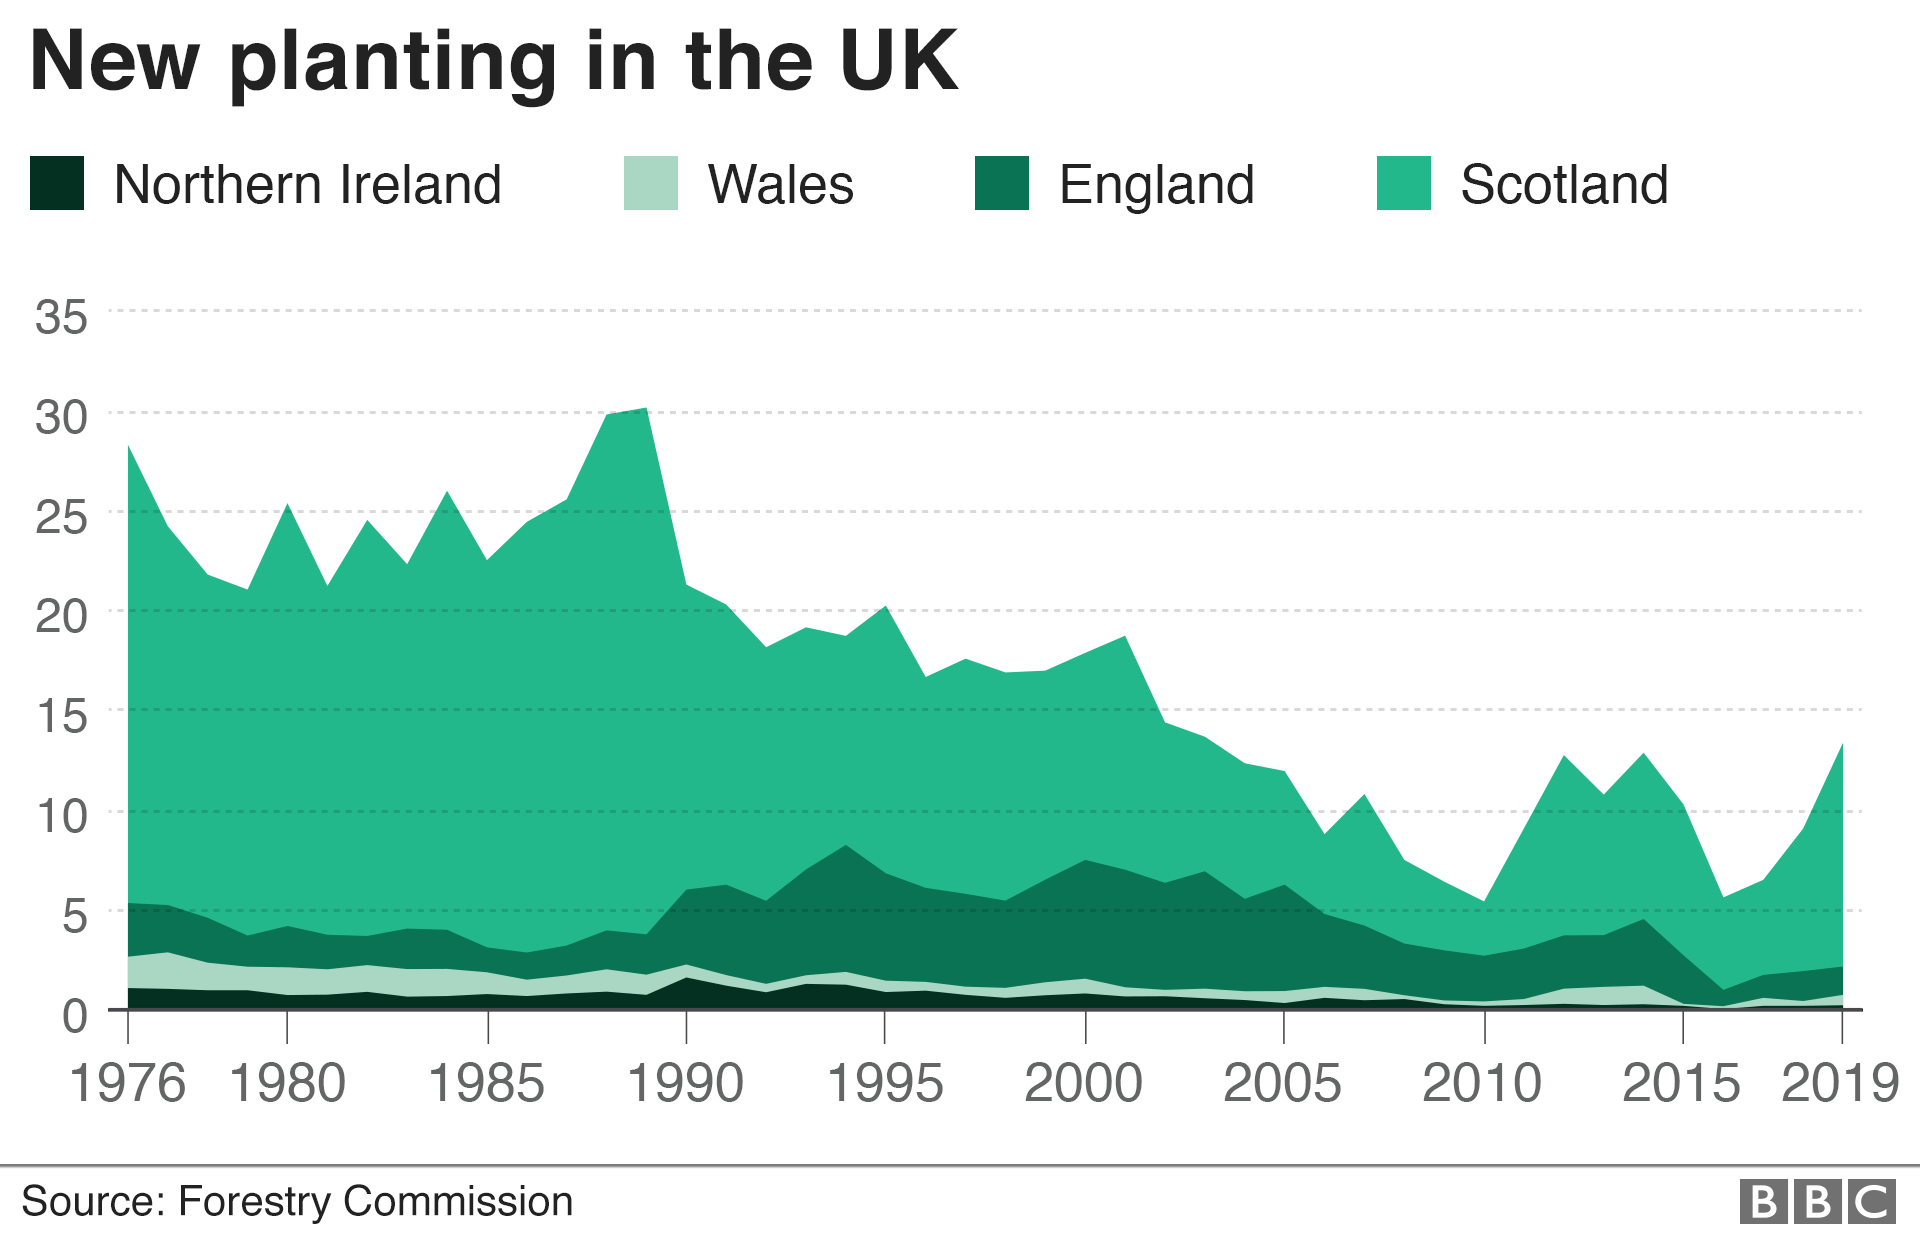 Graph showing new planting in the UK